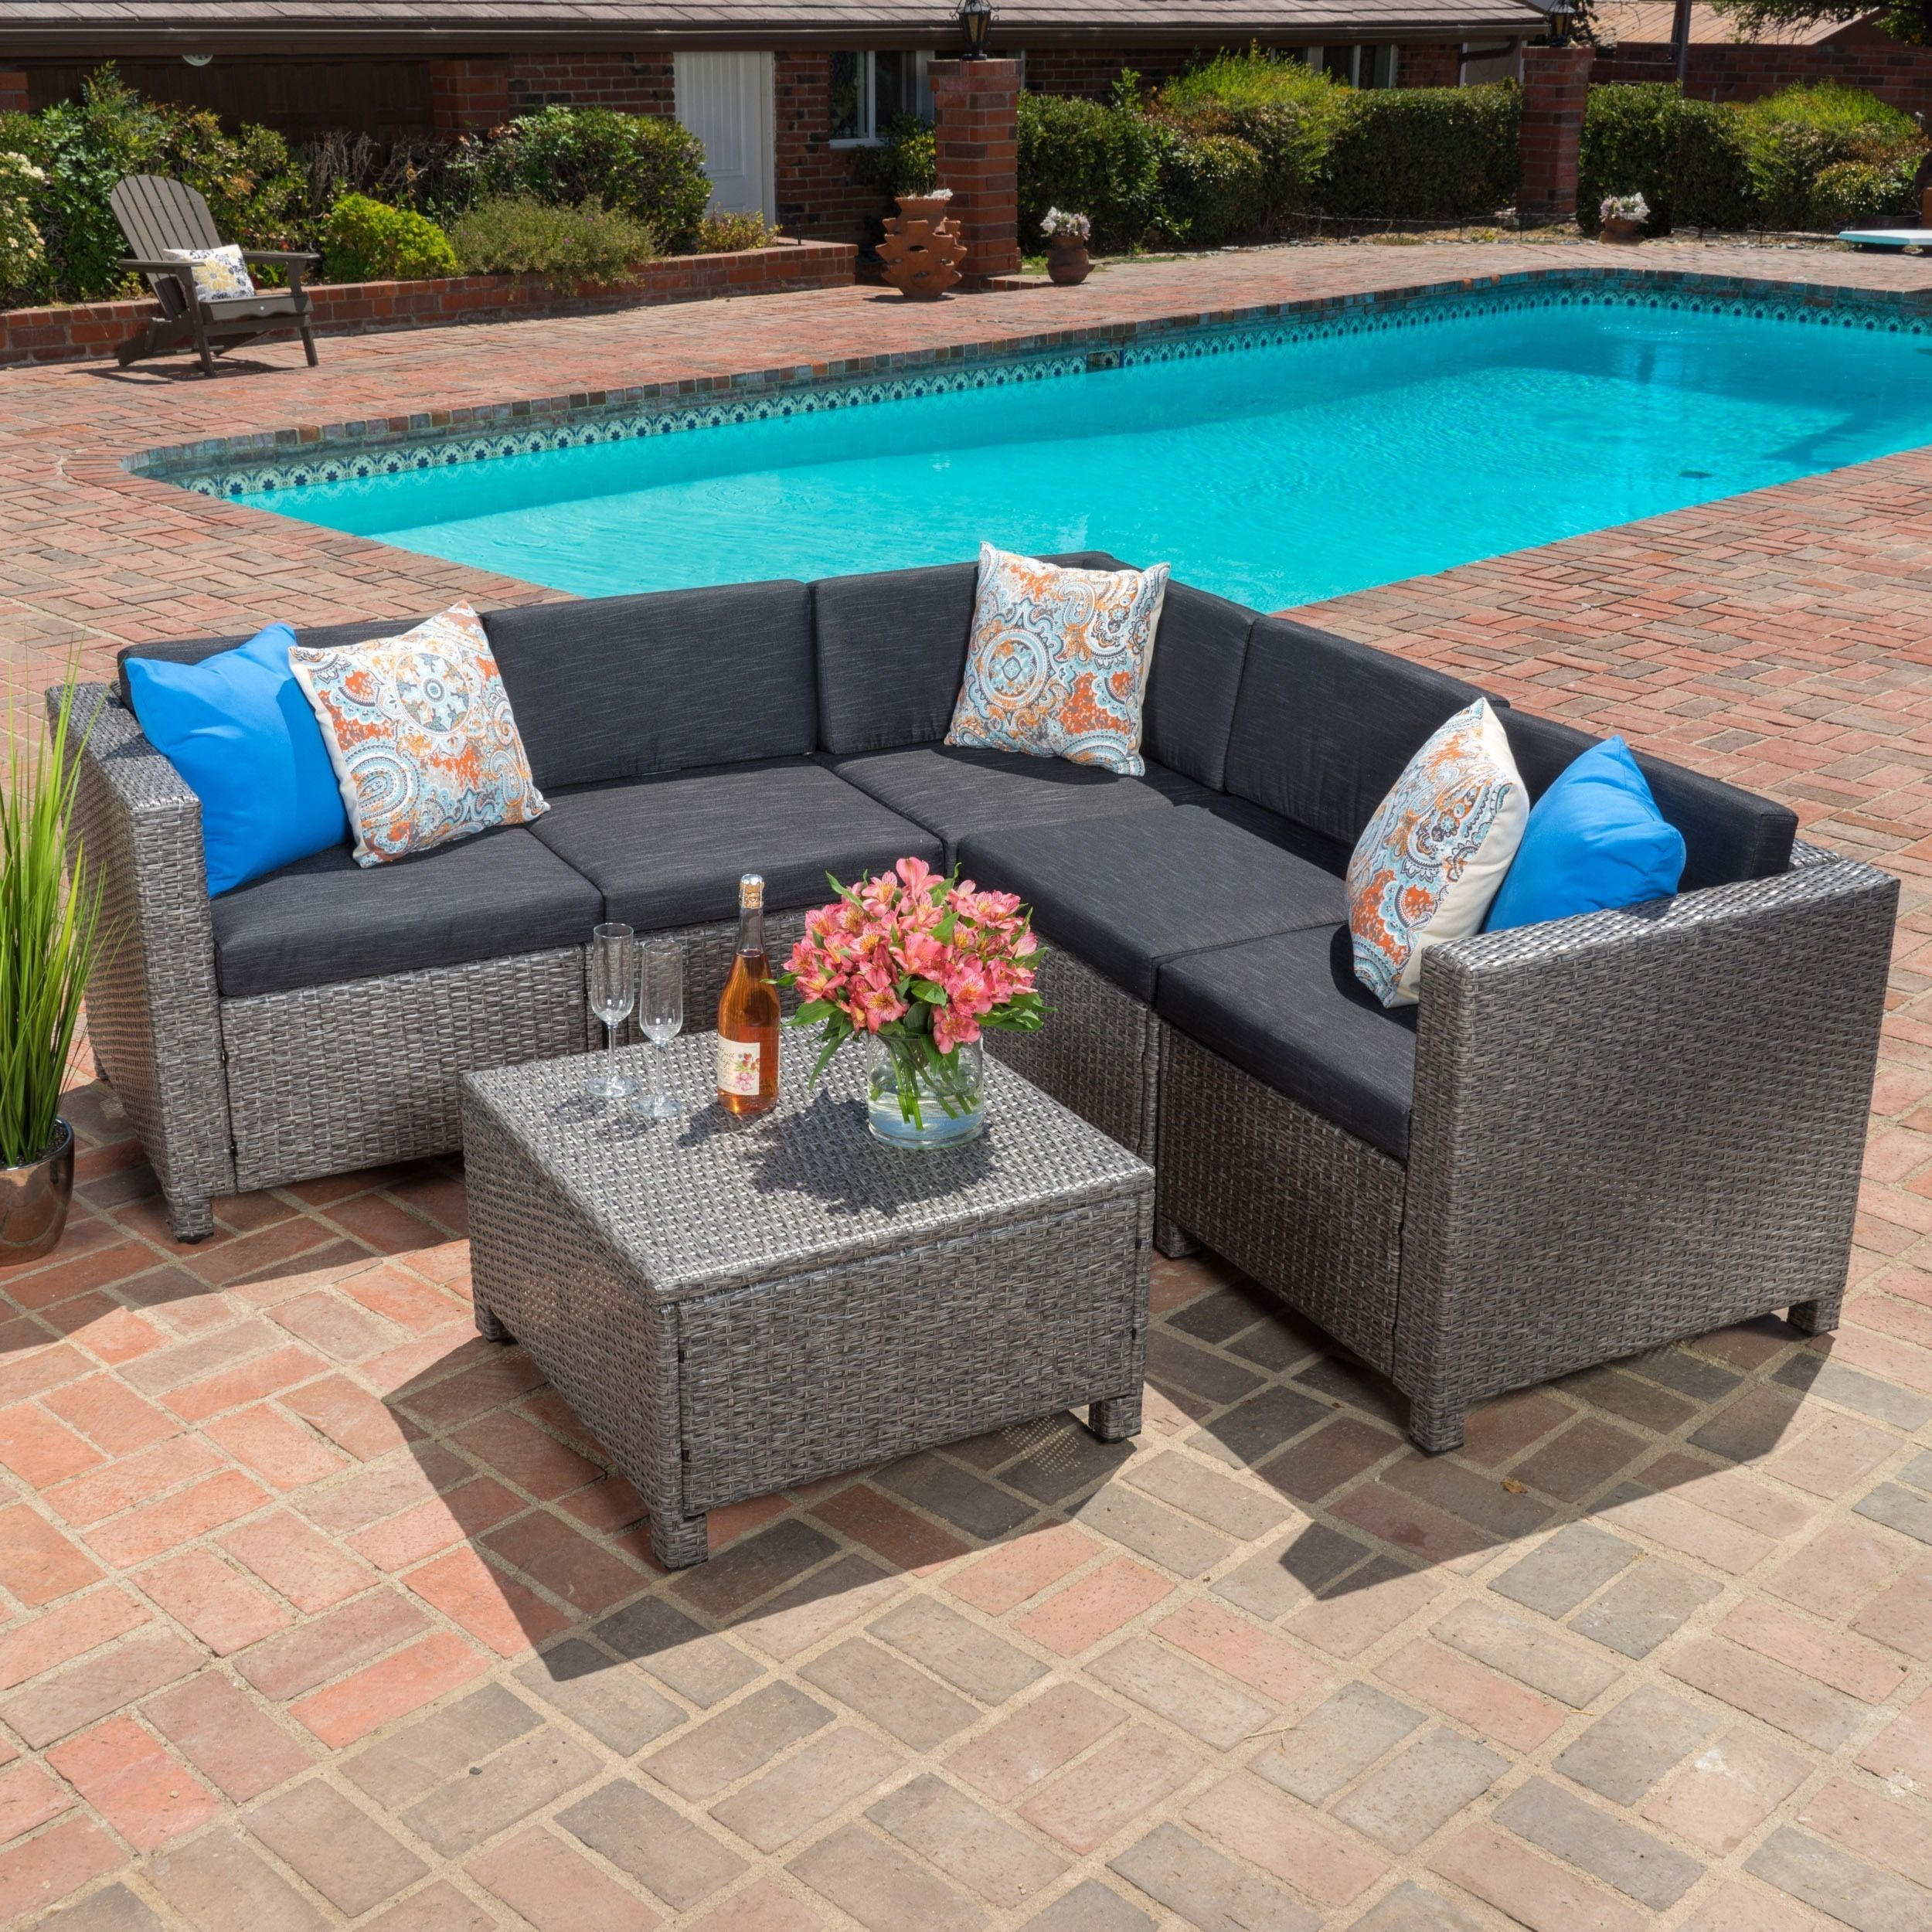 christopher knight home puerta grey outdoor wicker sofa set. Puerta Outdoor 6-piece Wicker V-Shaped Sectional Sofa Set By Christopher Knight Home Grey O